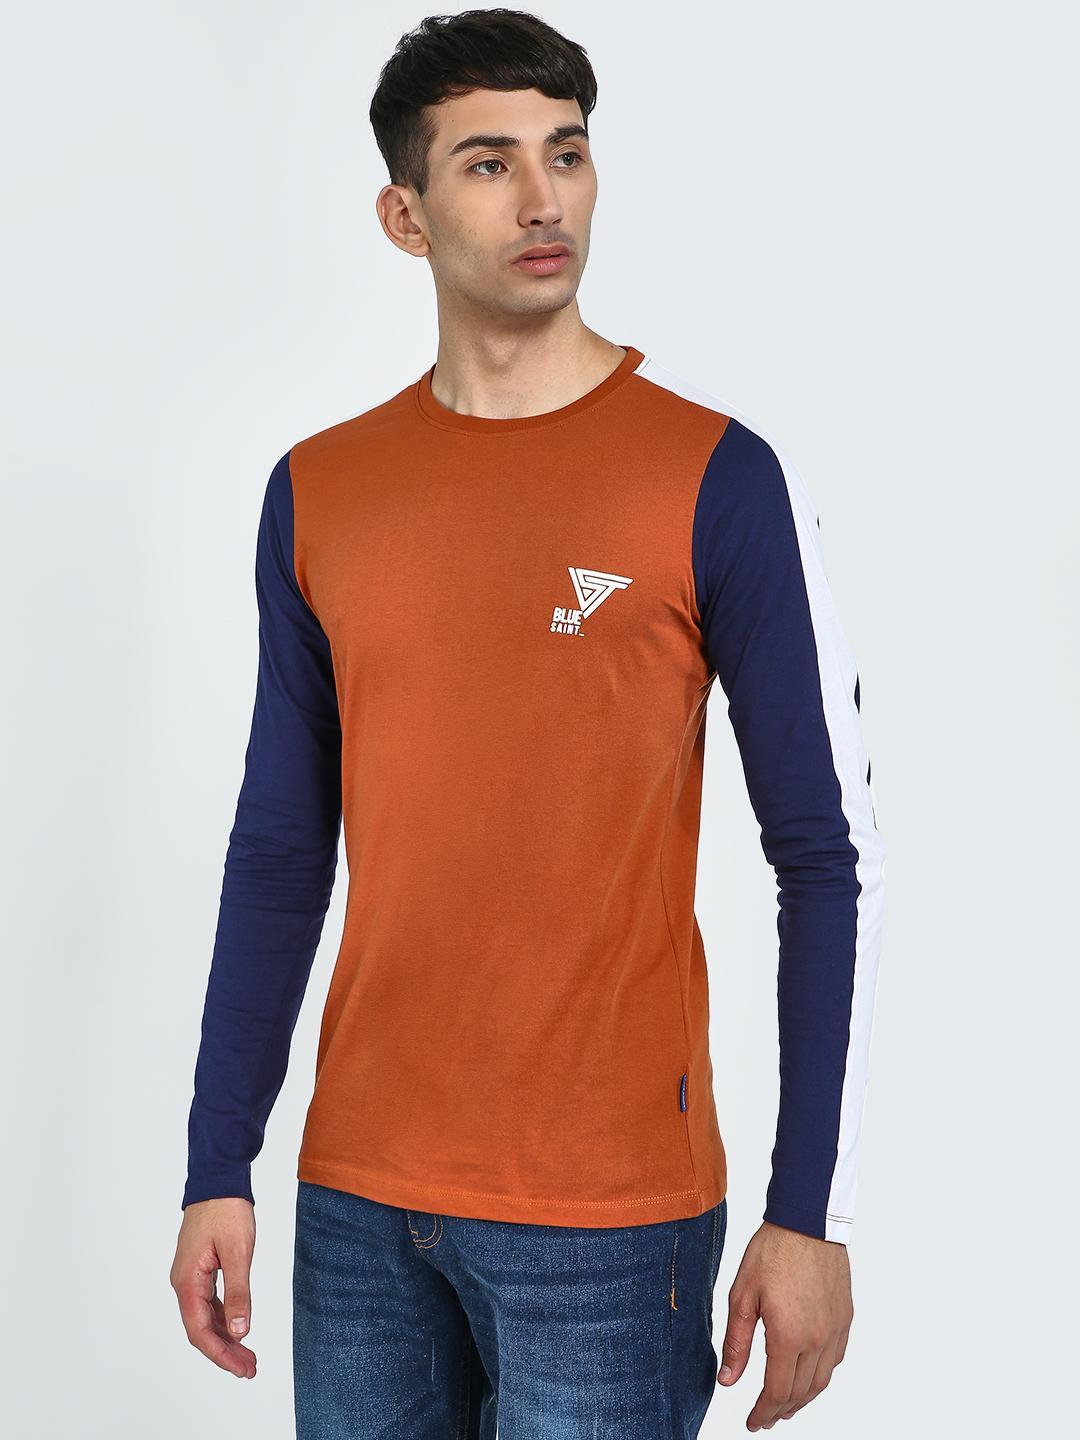 Blue Saint Navy/Orange Contrast Side Tape Long Sleeve T-Shirt 1